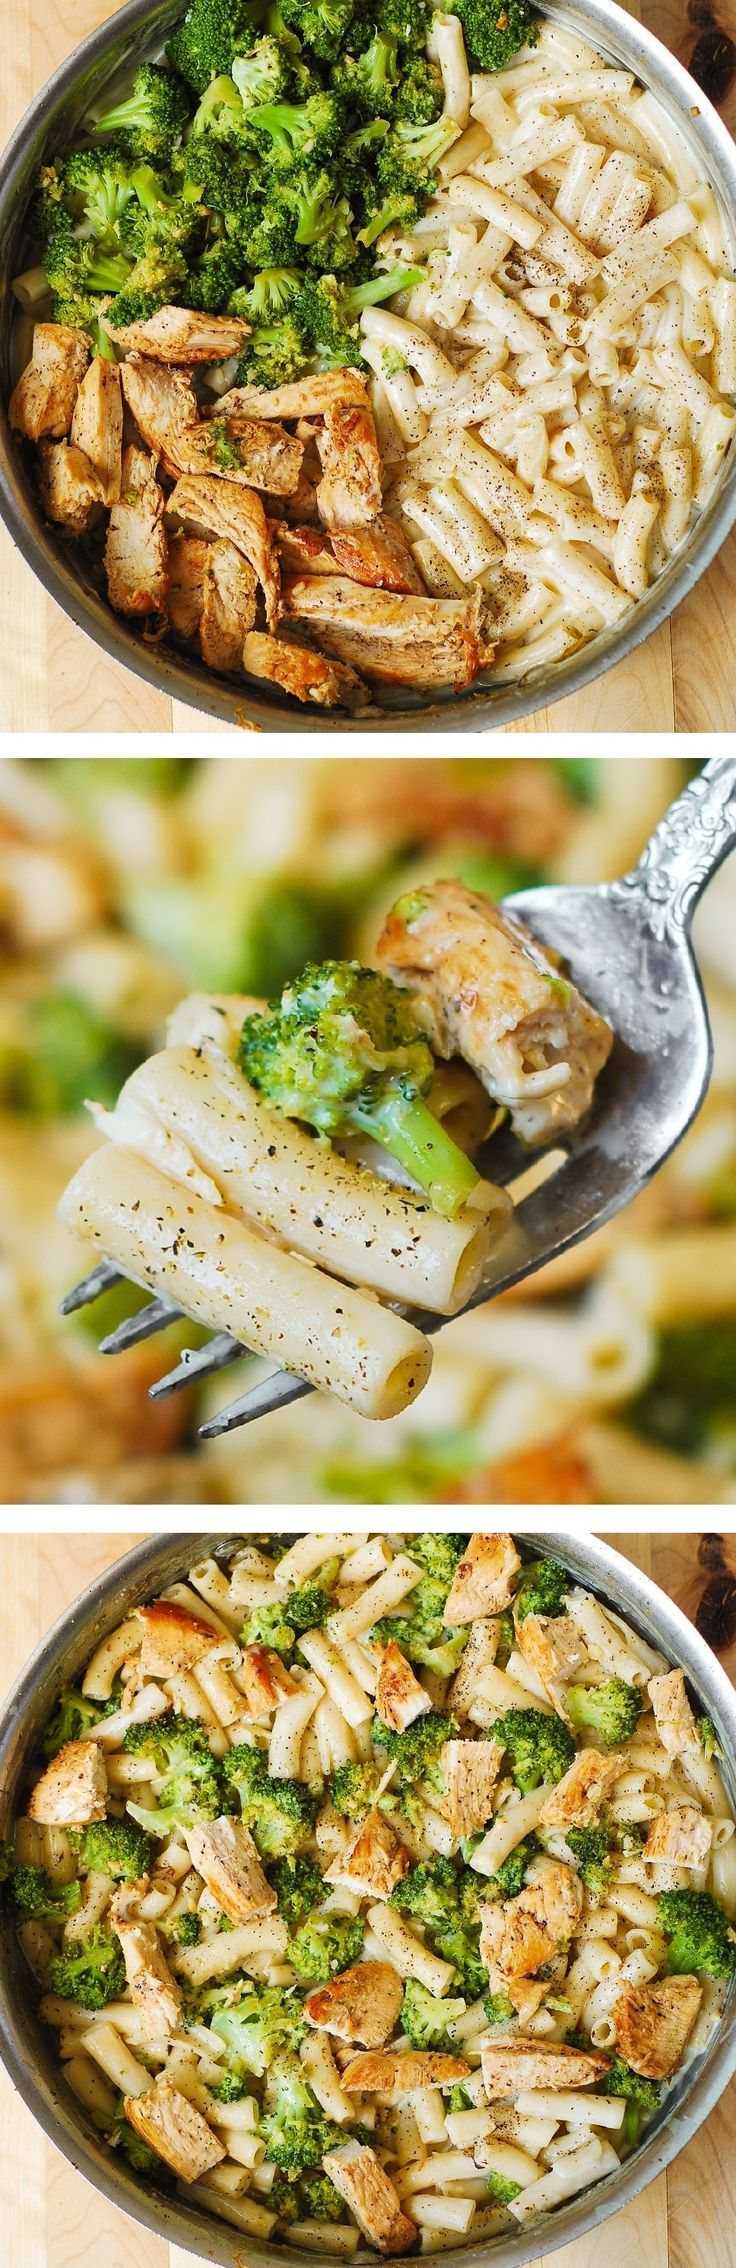 Chicken Broccoli Alfredo Penne Pasta - Chicken breast, broccoli, garlic in a simple homemade cream sauce. Delicious, creamy, Italian-style pasta dinner!